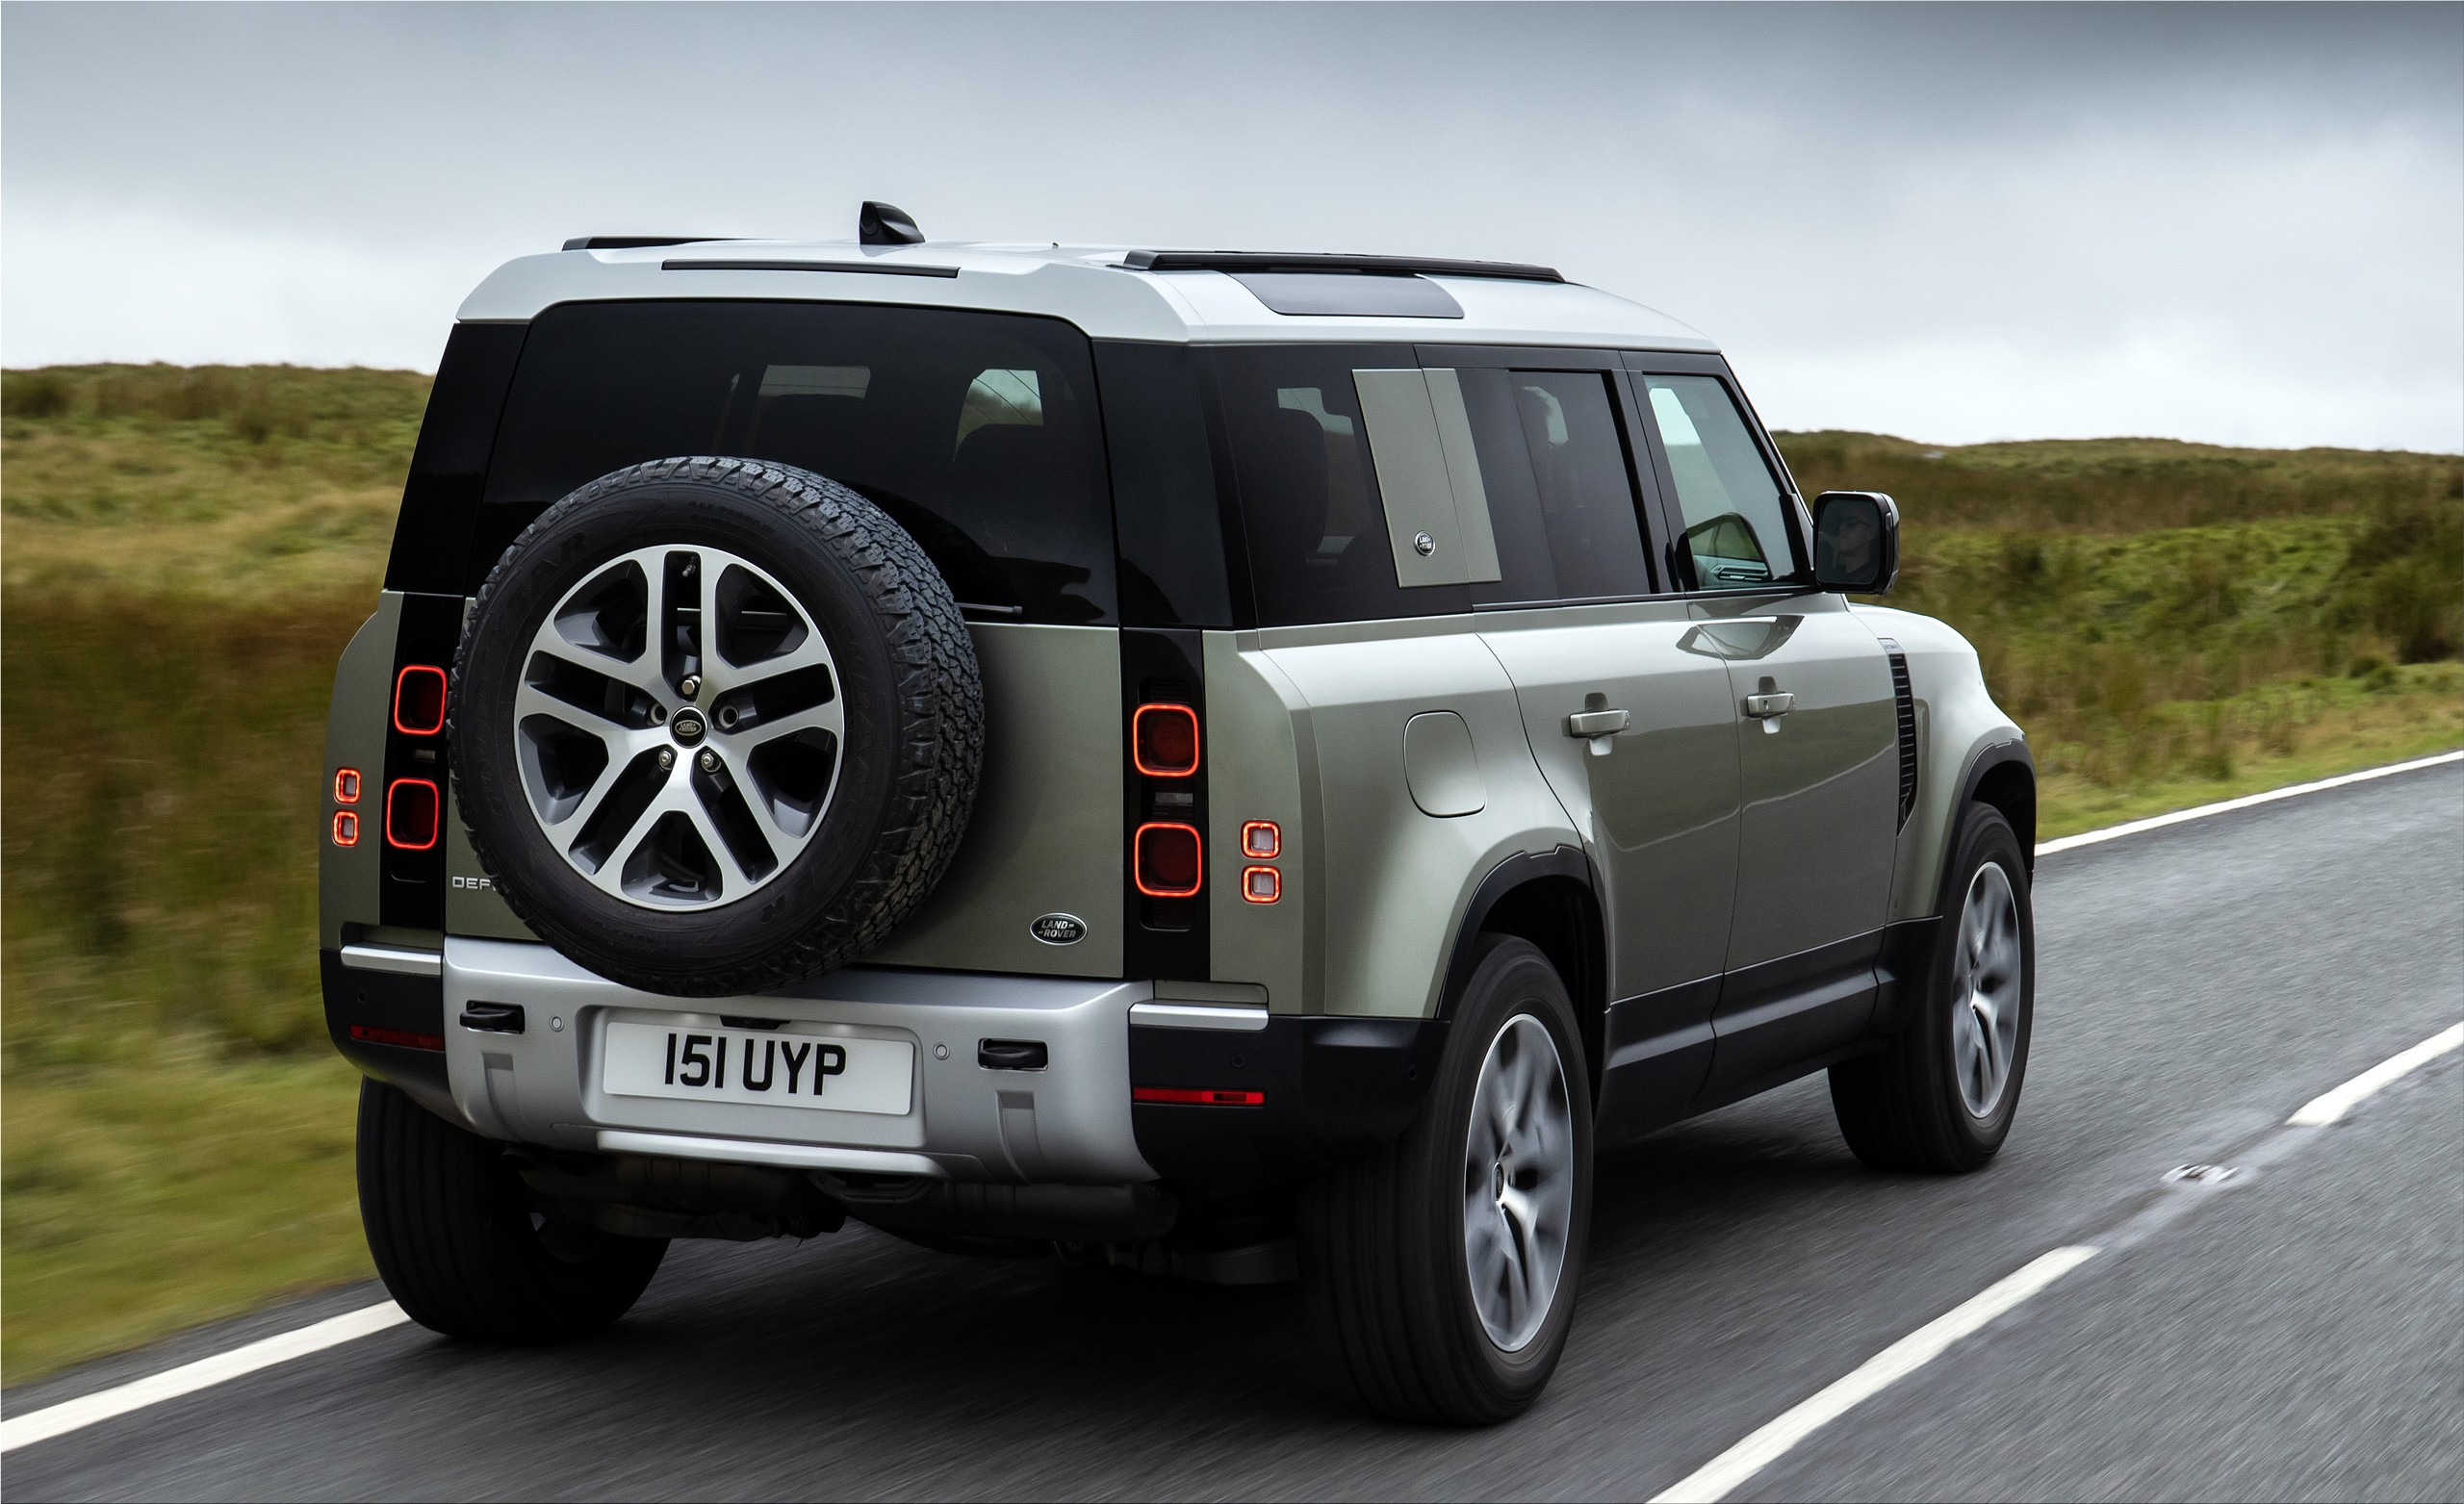 The new Land Rover Defender P400e plug-in hybrid with 404 ...